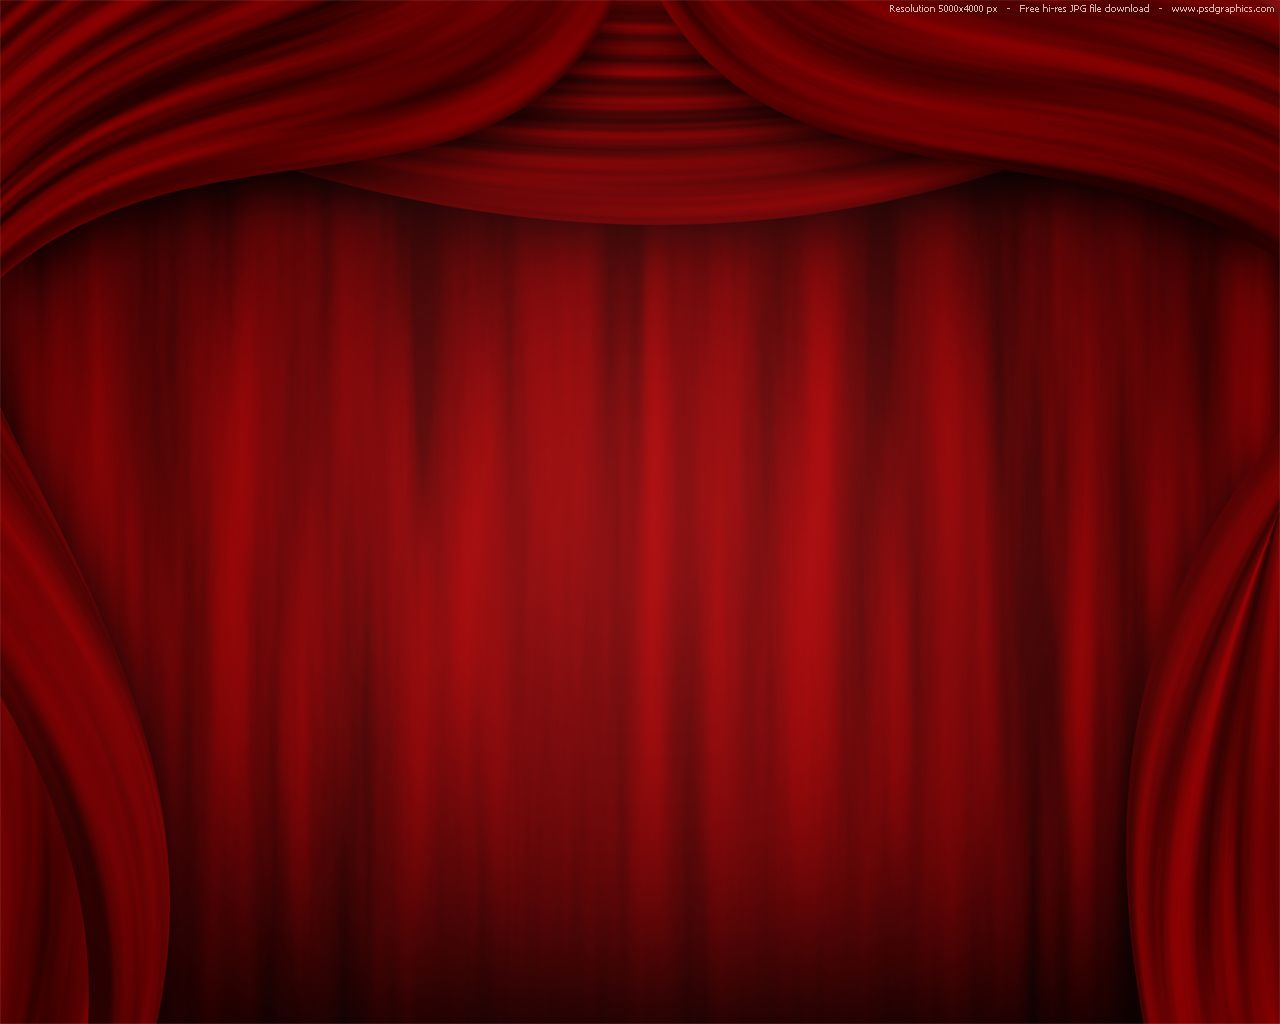 red itm show background pleated backdrop prop stage curtains velvet studio curtain photo